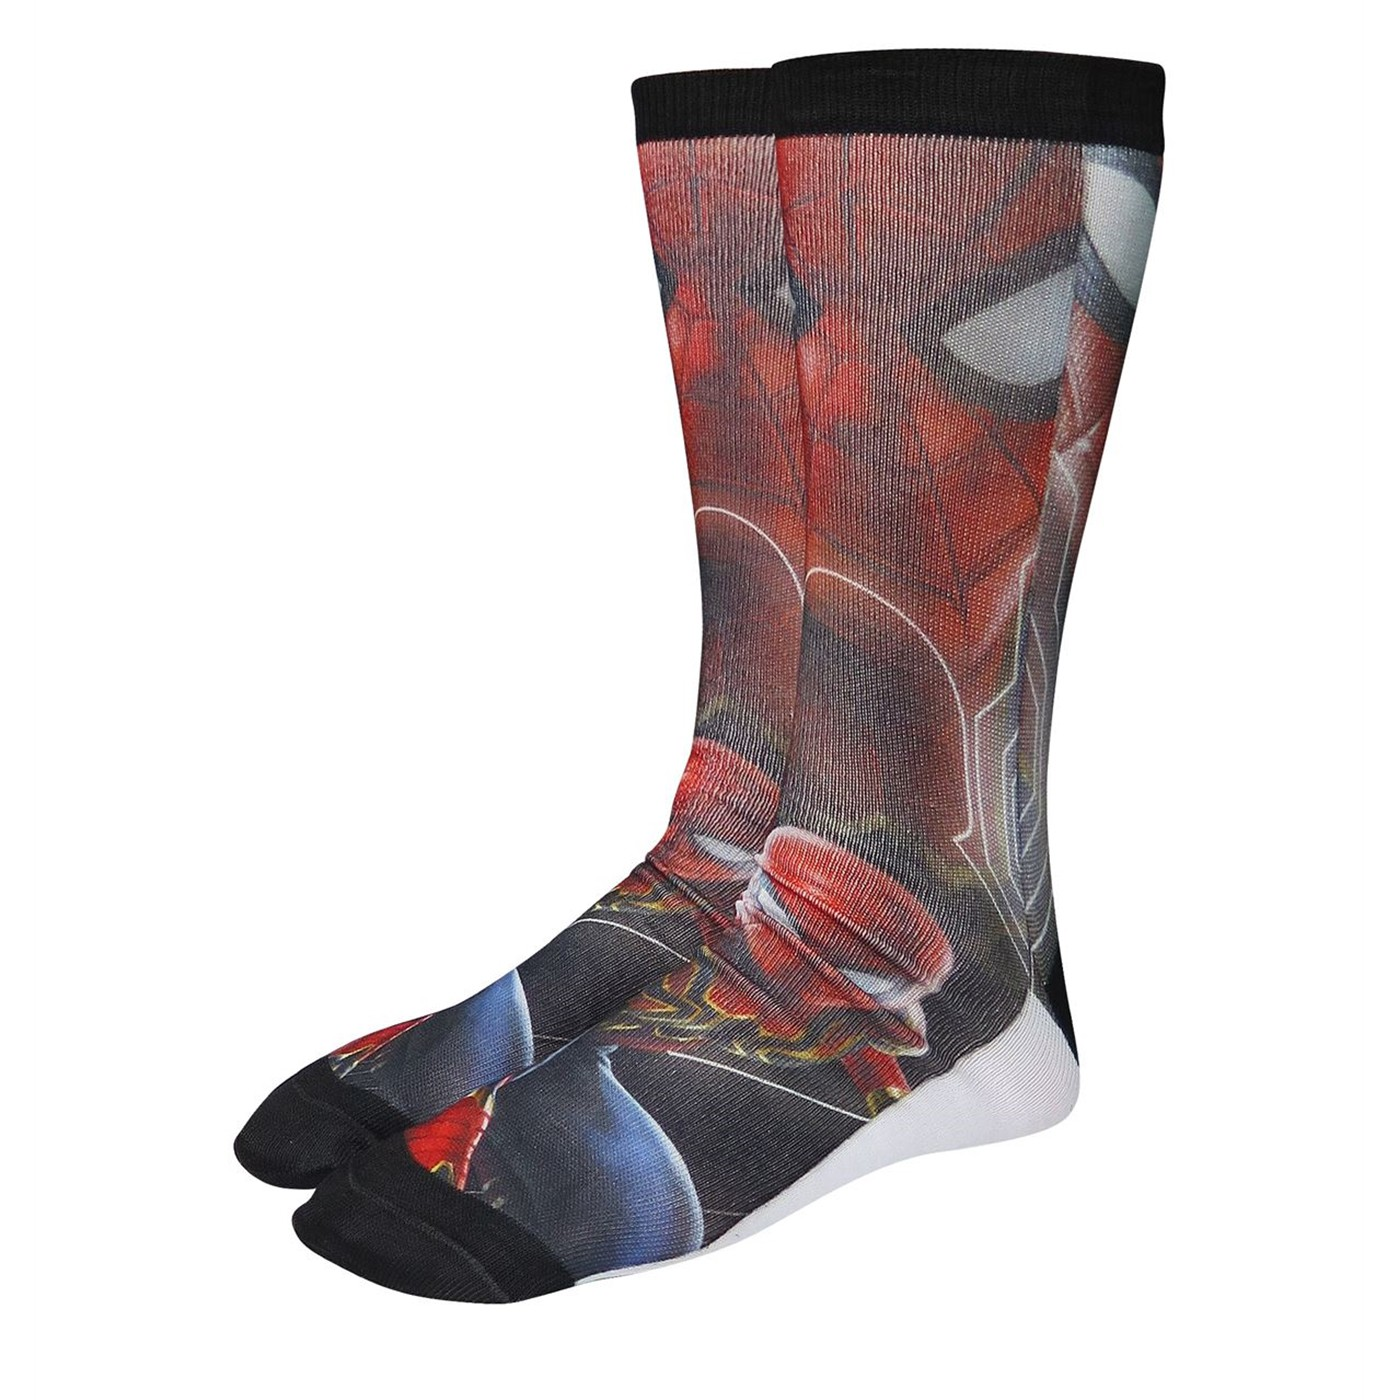 Spider-Man Infinity War Photoreal Socks 2-Pack